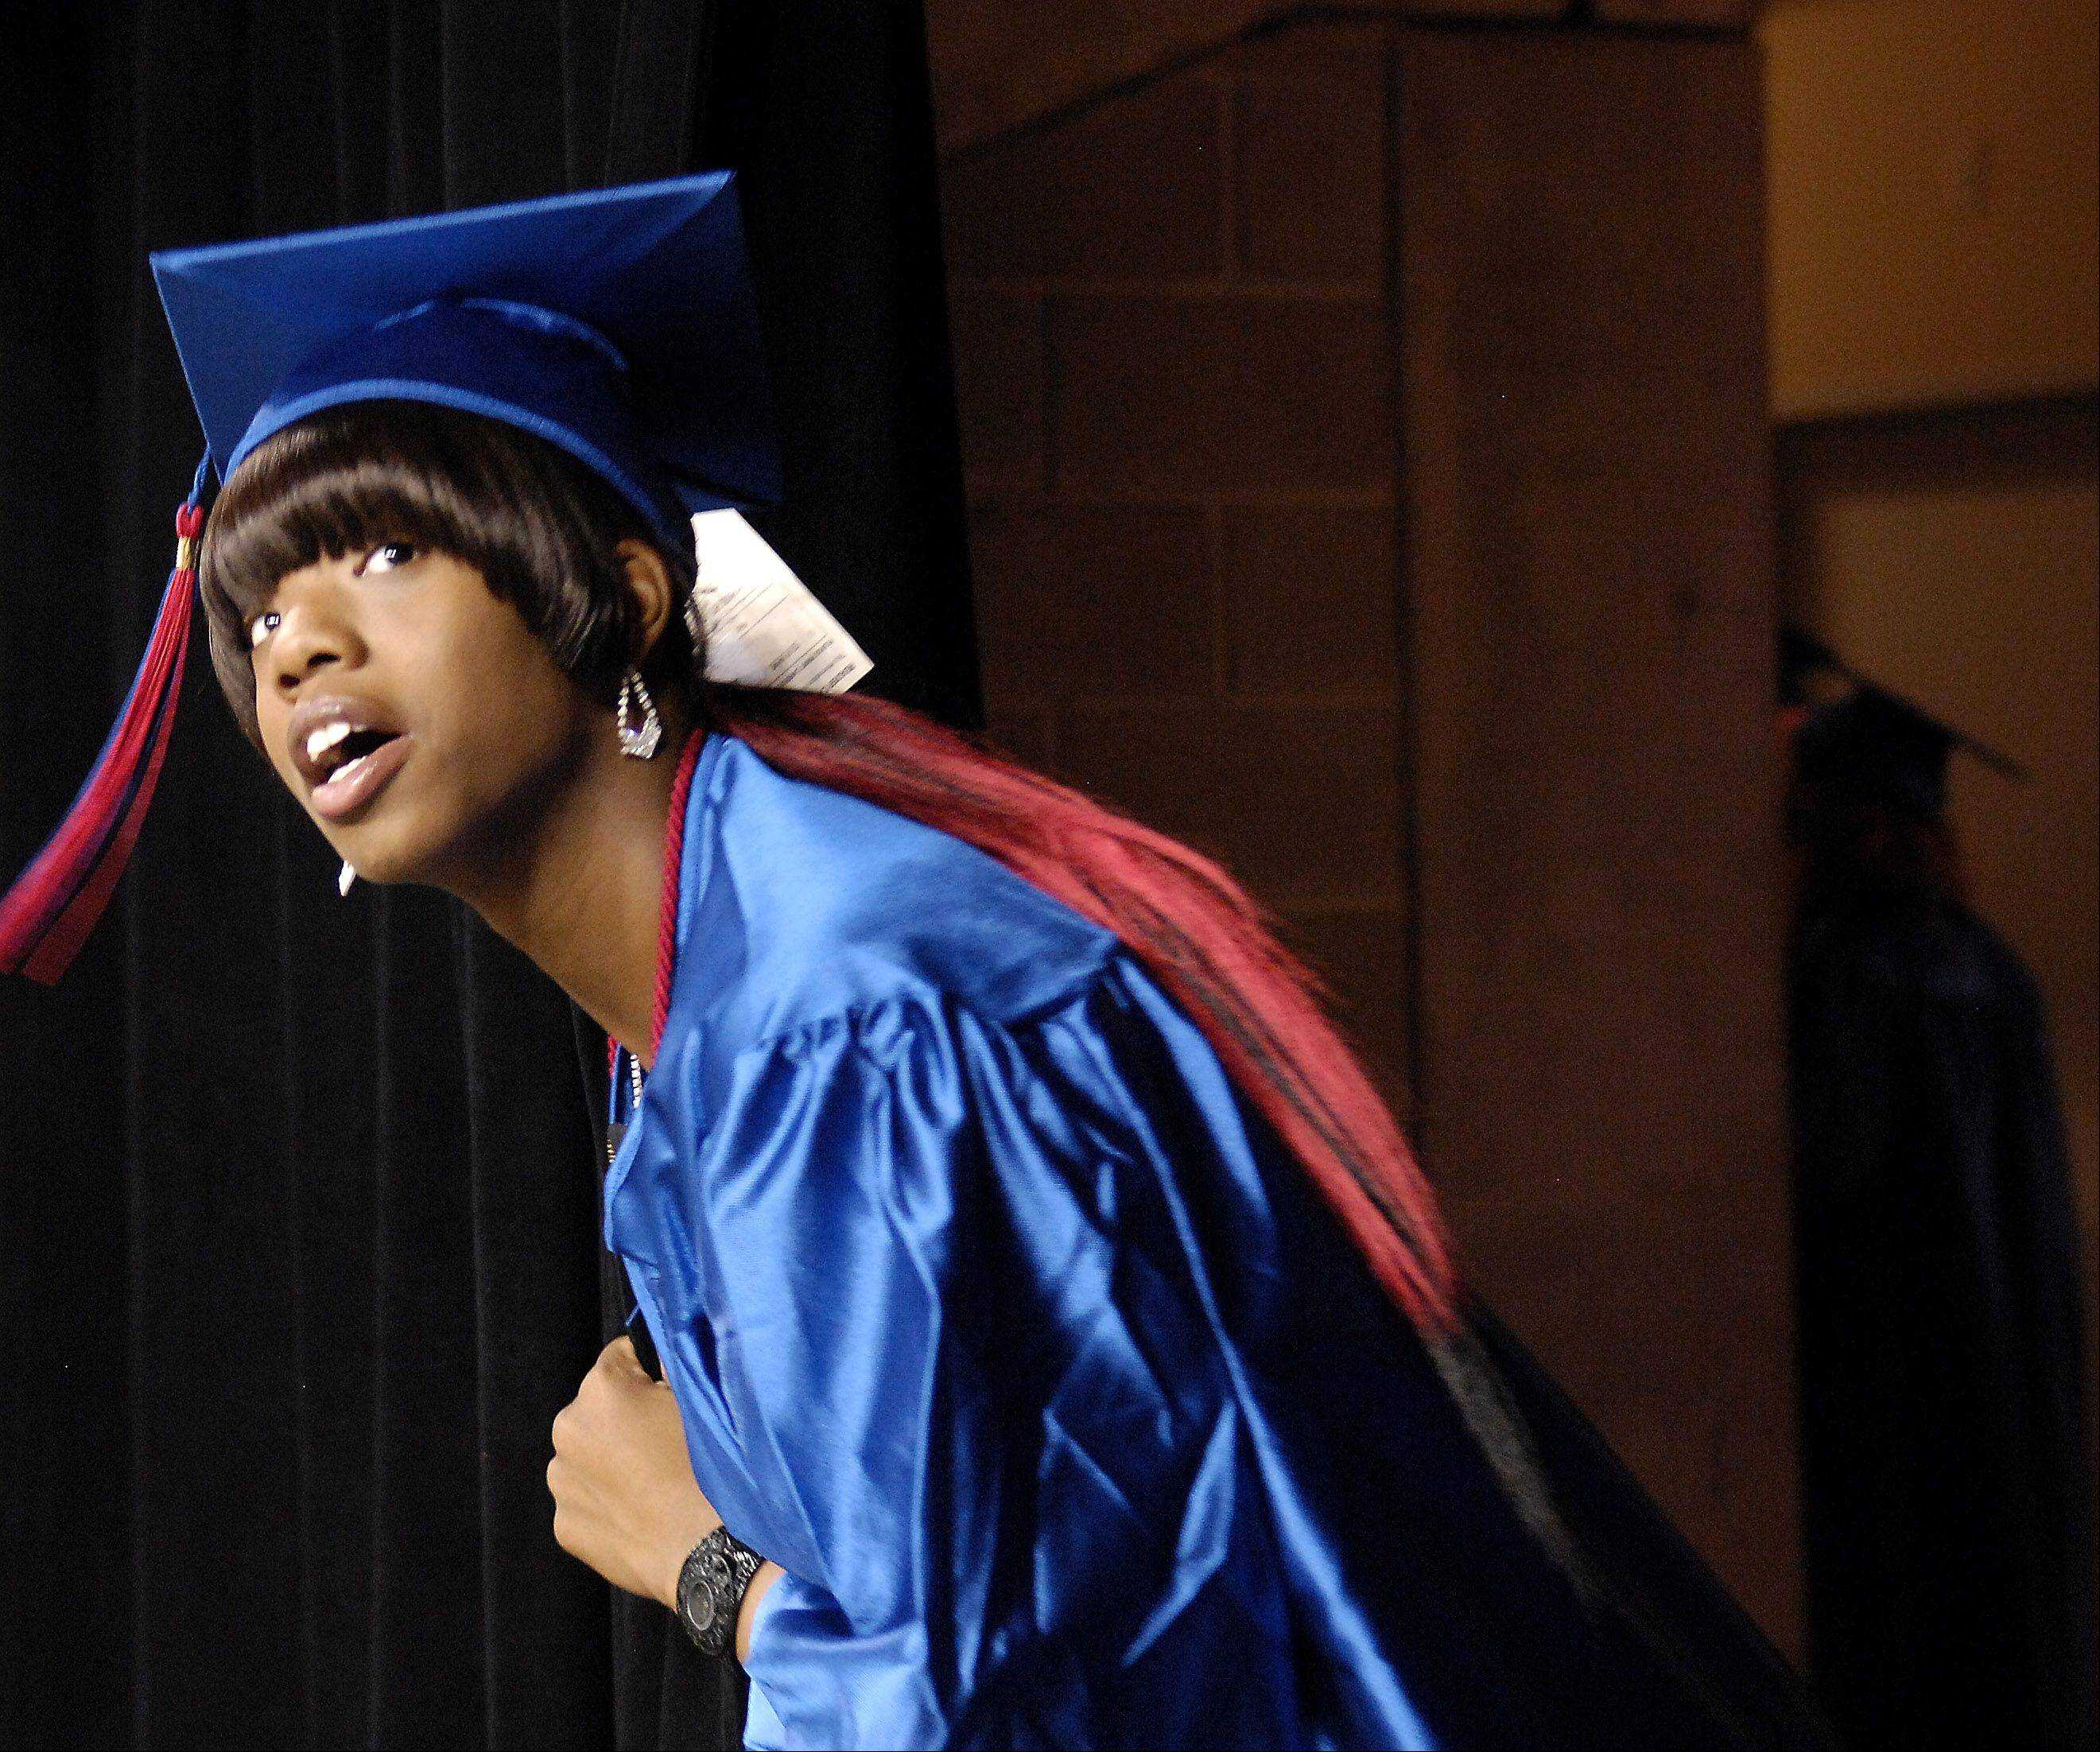 Shameeka Bramlett peeks her head out of the tunnel to look for her family before the start of Dundee-Crown's graduation ceremony Saturday at the Sears Centre in Hoffman Estates.